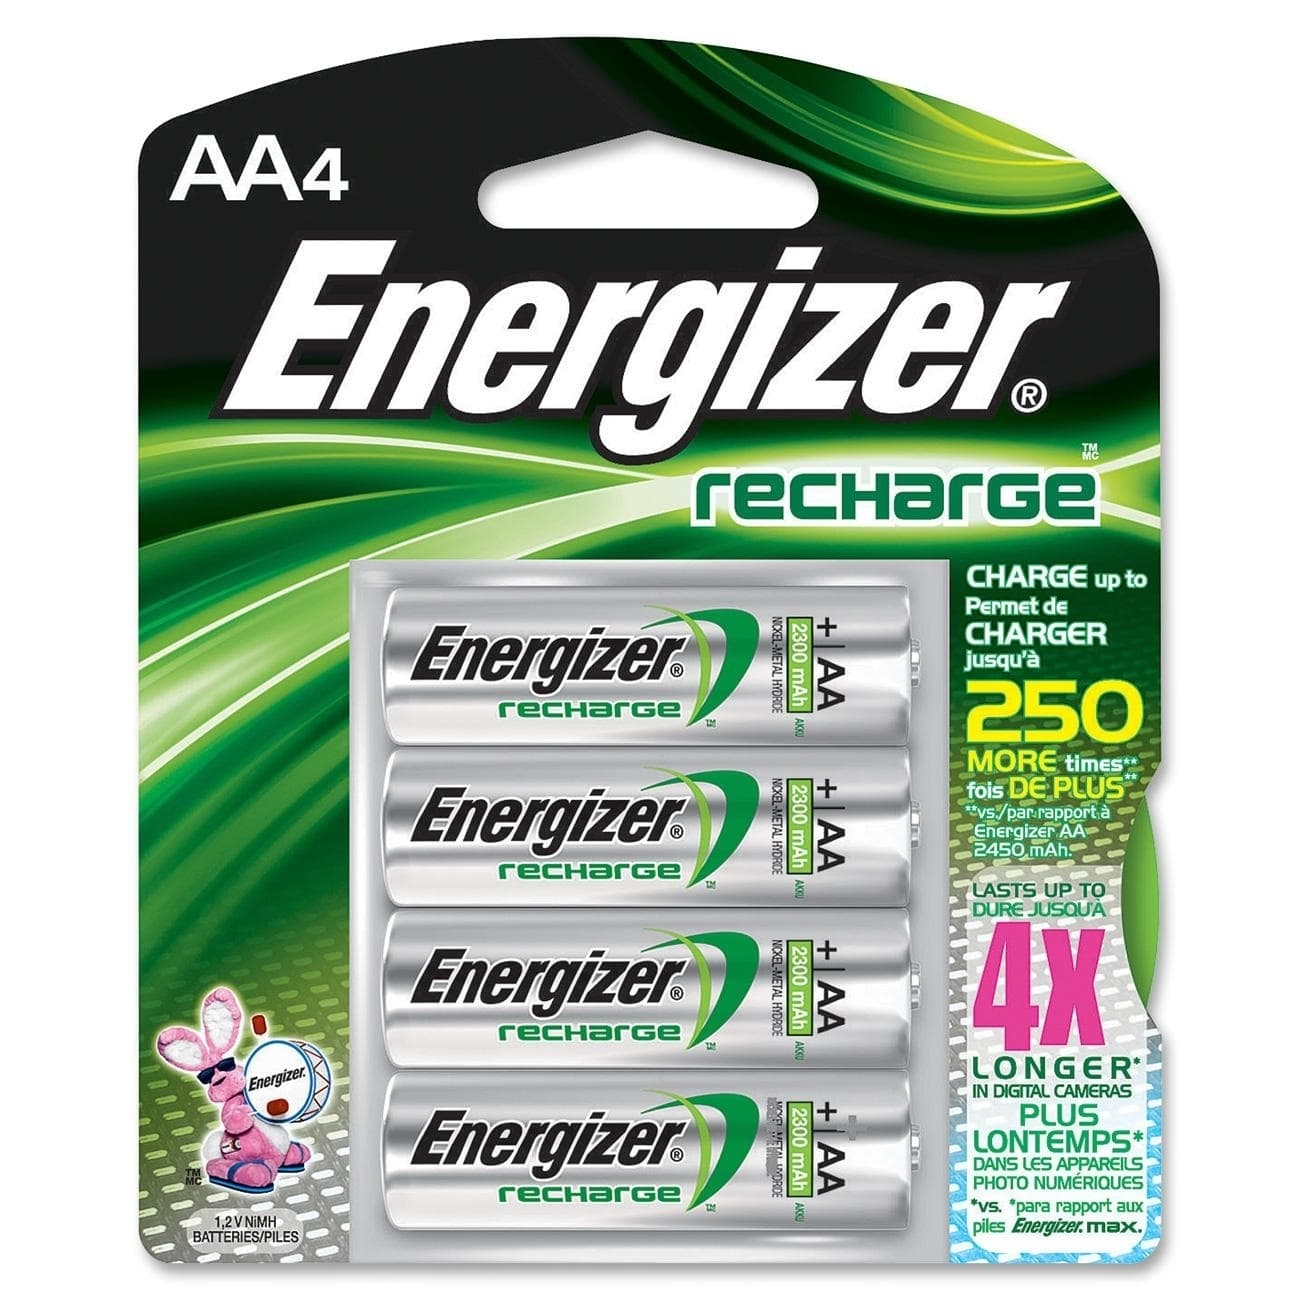 Energizer Rechargable AA Batteries, 4 Count